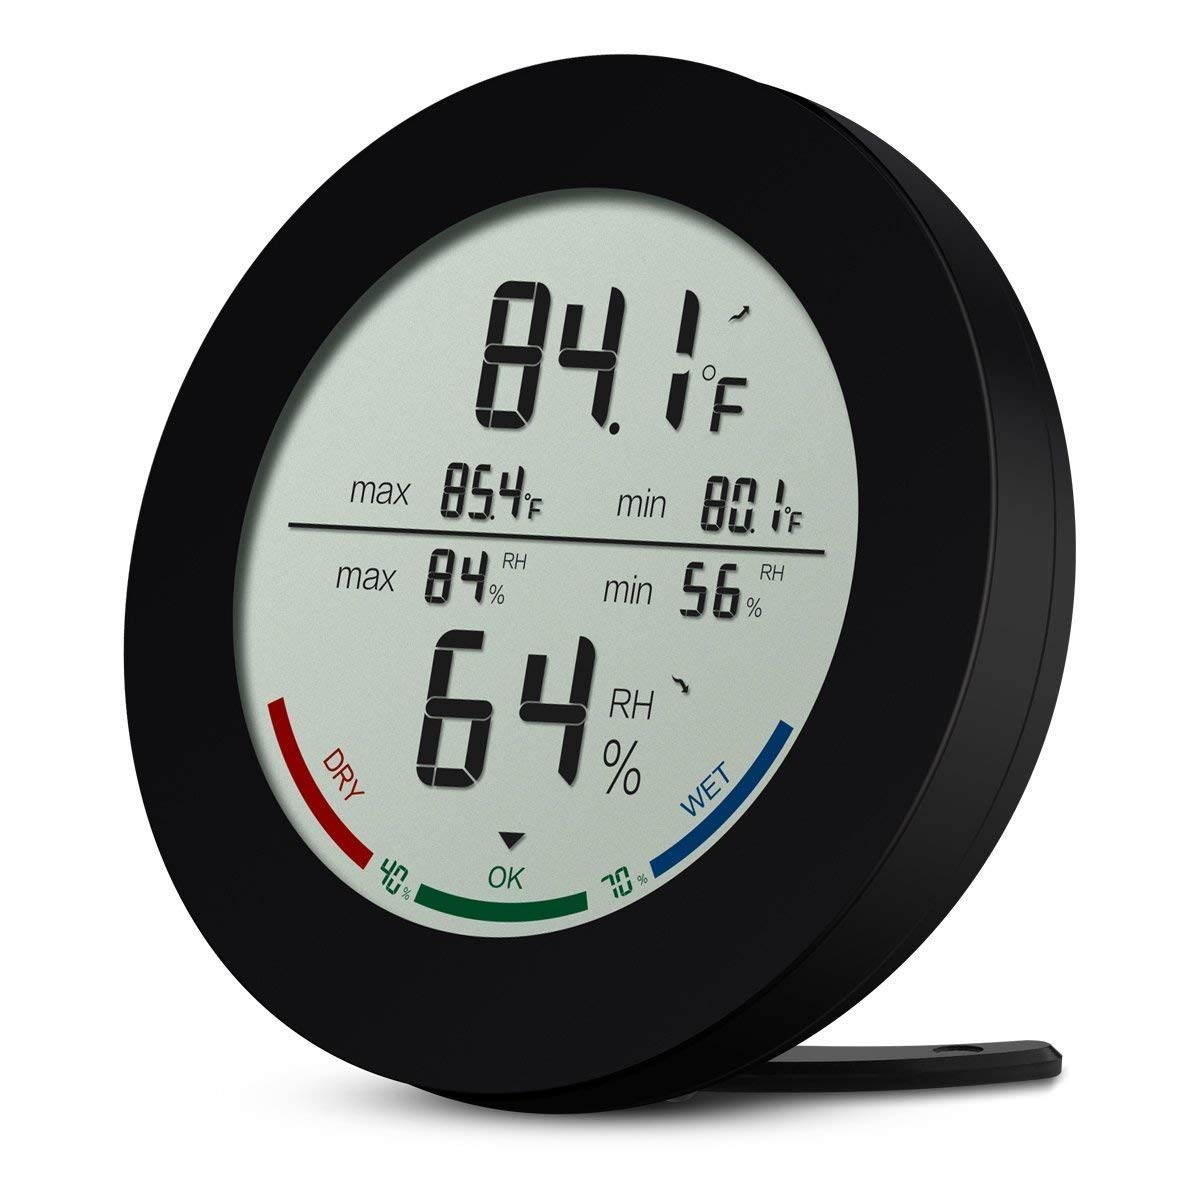 Indoor Hygrometer Thermometer, Digital Temperature and Humidity Monitor, Humidity Meter with LCD Screen, MIN/MAX Records, Trend of Temperature Change, ℃/℉ Switch, Comfort Indicators for Home